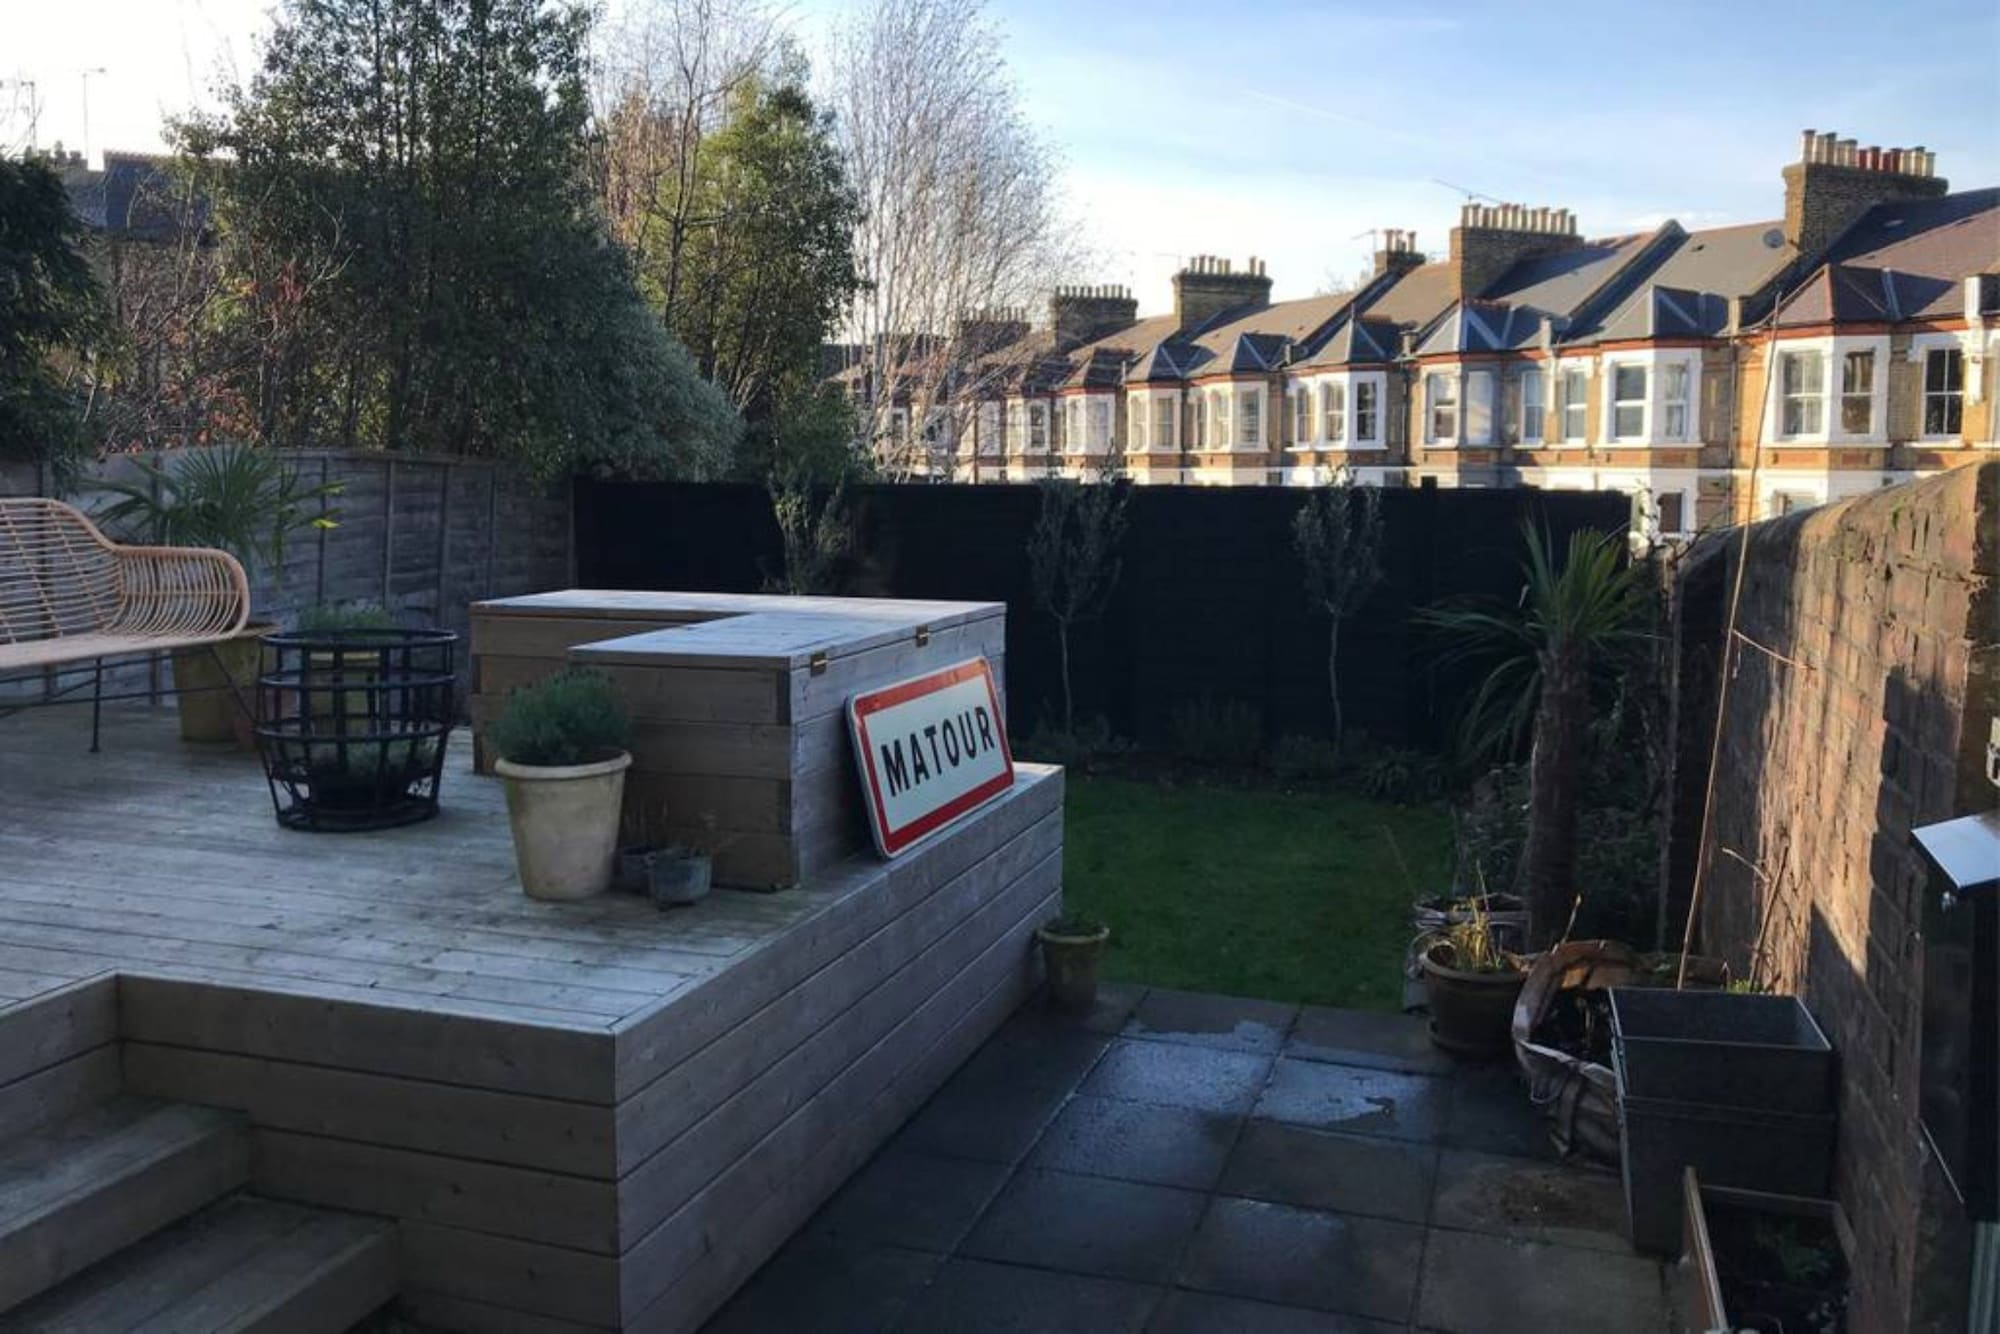 Bright 1 Bedroom Flat With Garden in New Cross Gate, London